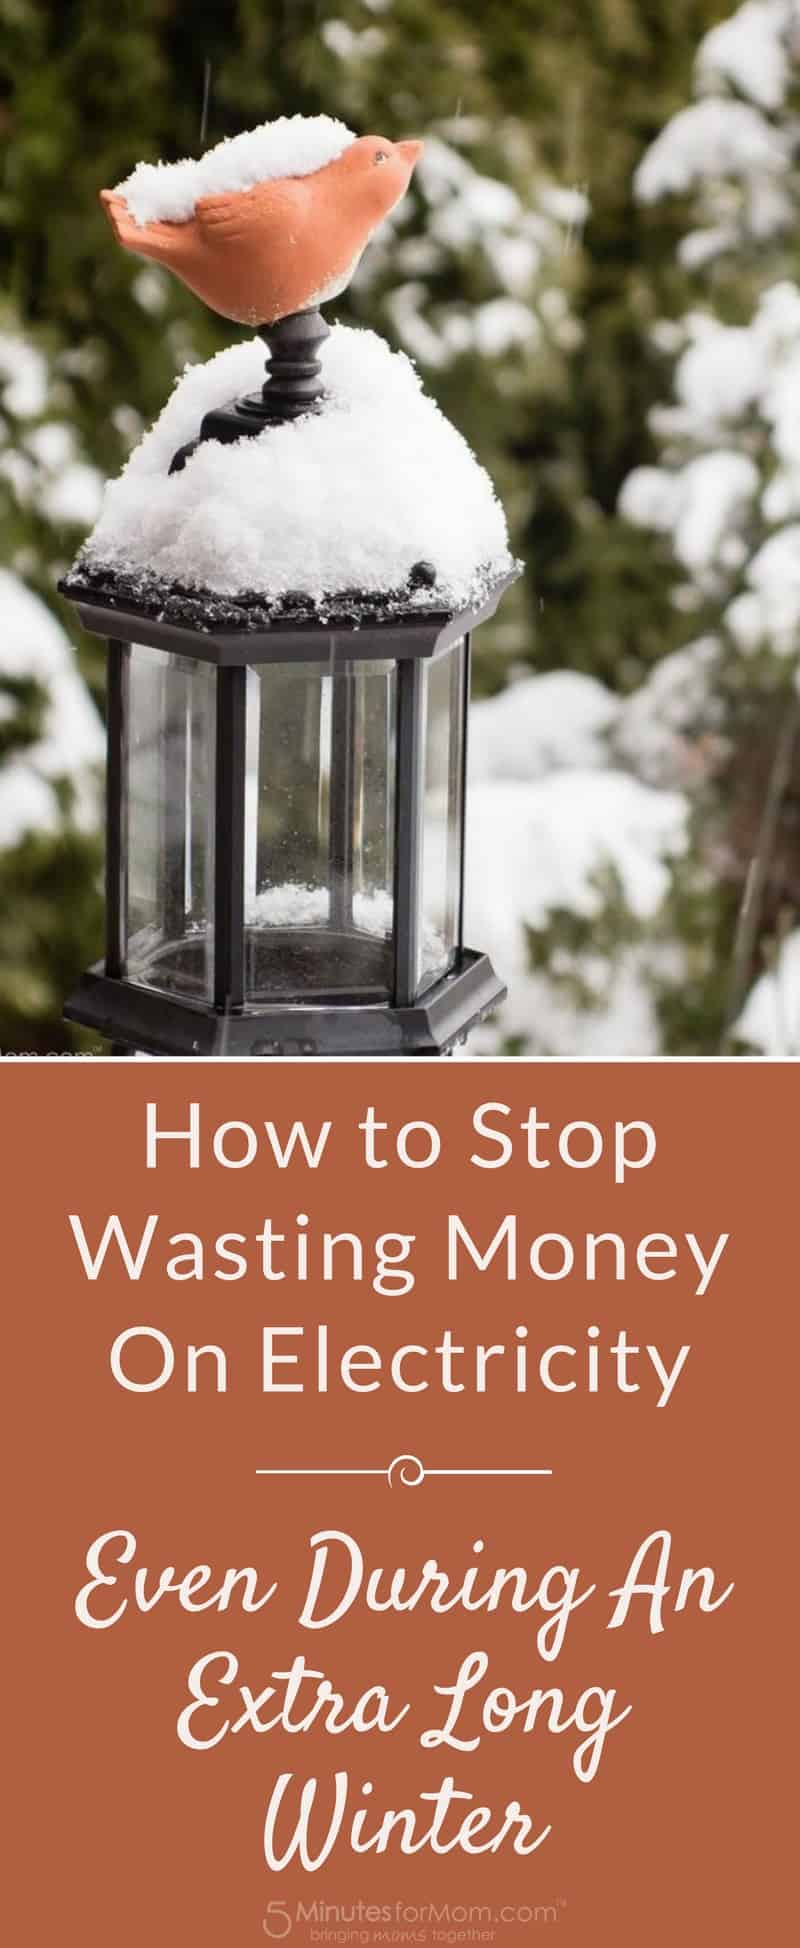 How to Stop Wasting Money on Electricity even during an extra long winter